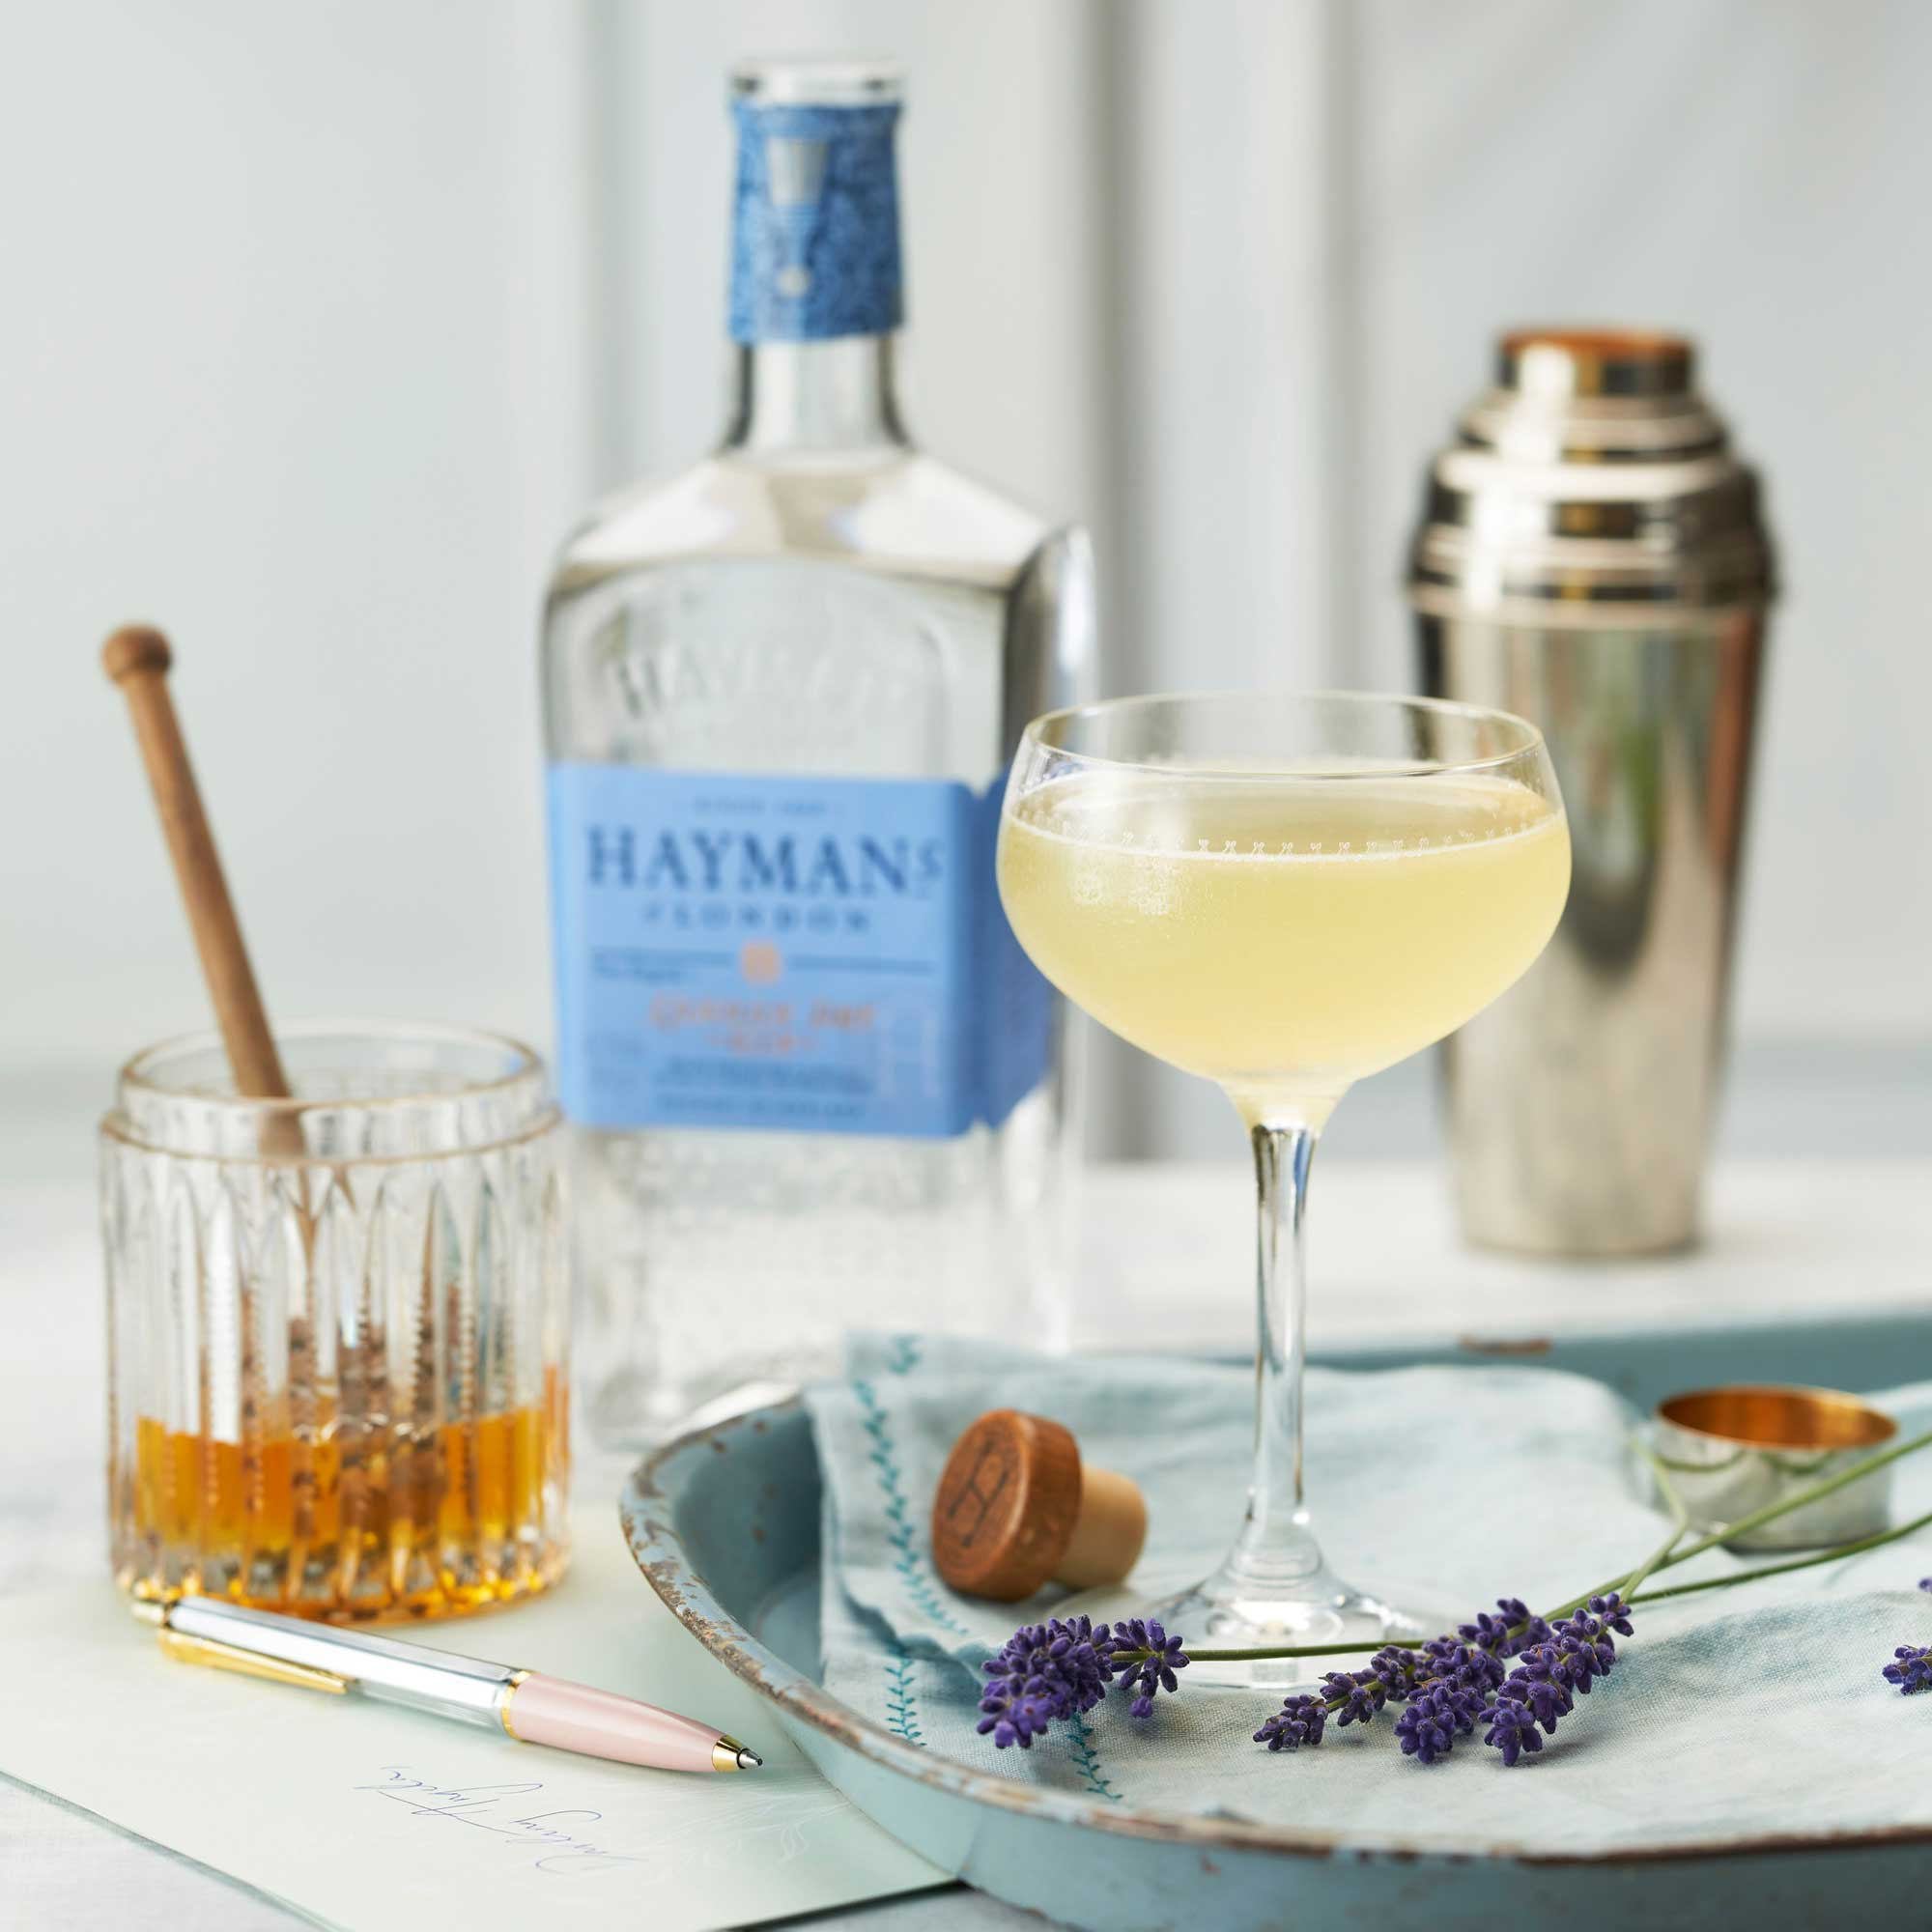 An example of the Bee's Knees, the mixed drink (cocktail), by Frank Meier, Ritz Carlton, Paris, featuring Hayman's London Dry Gin, honey syrup, and lemon juice; photo by Hayman's of London